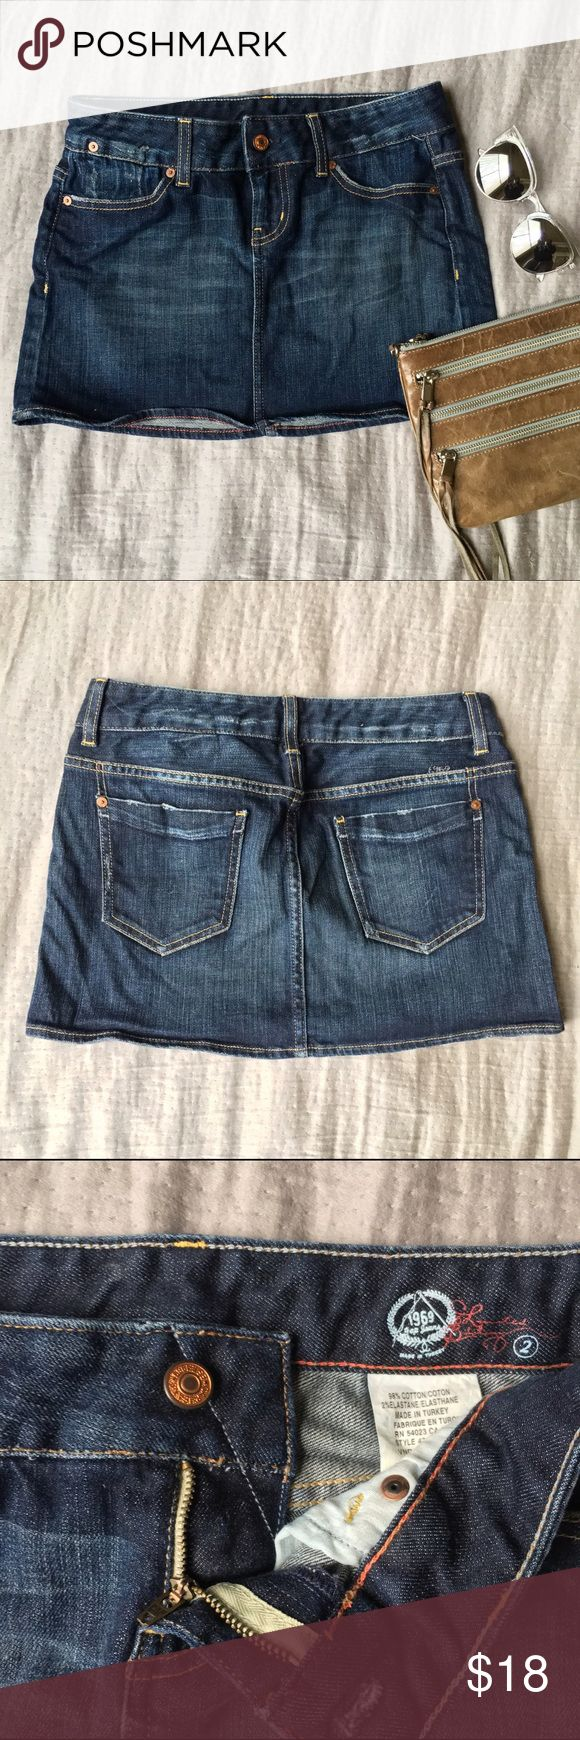 Gap Dark Denim Jean Miniskirt (EUC)(2) Wear with or without tights, pair em with your favorite sunnies and get ready for spring! This is a dark denim miniskirt by Gap. Size 2. In excellent condition! GAP Skirts Mini